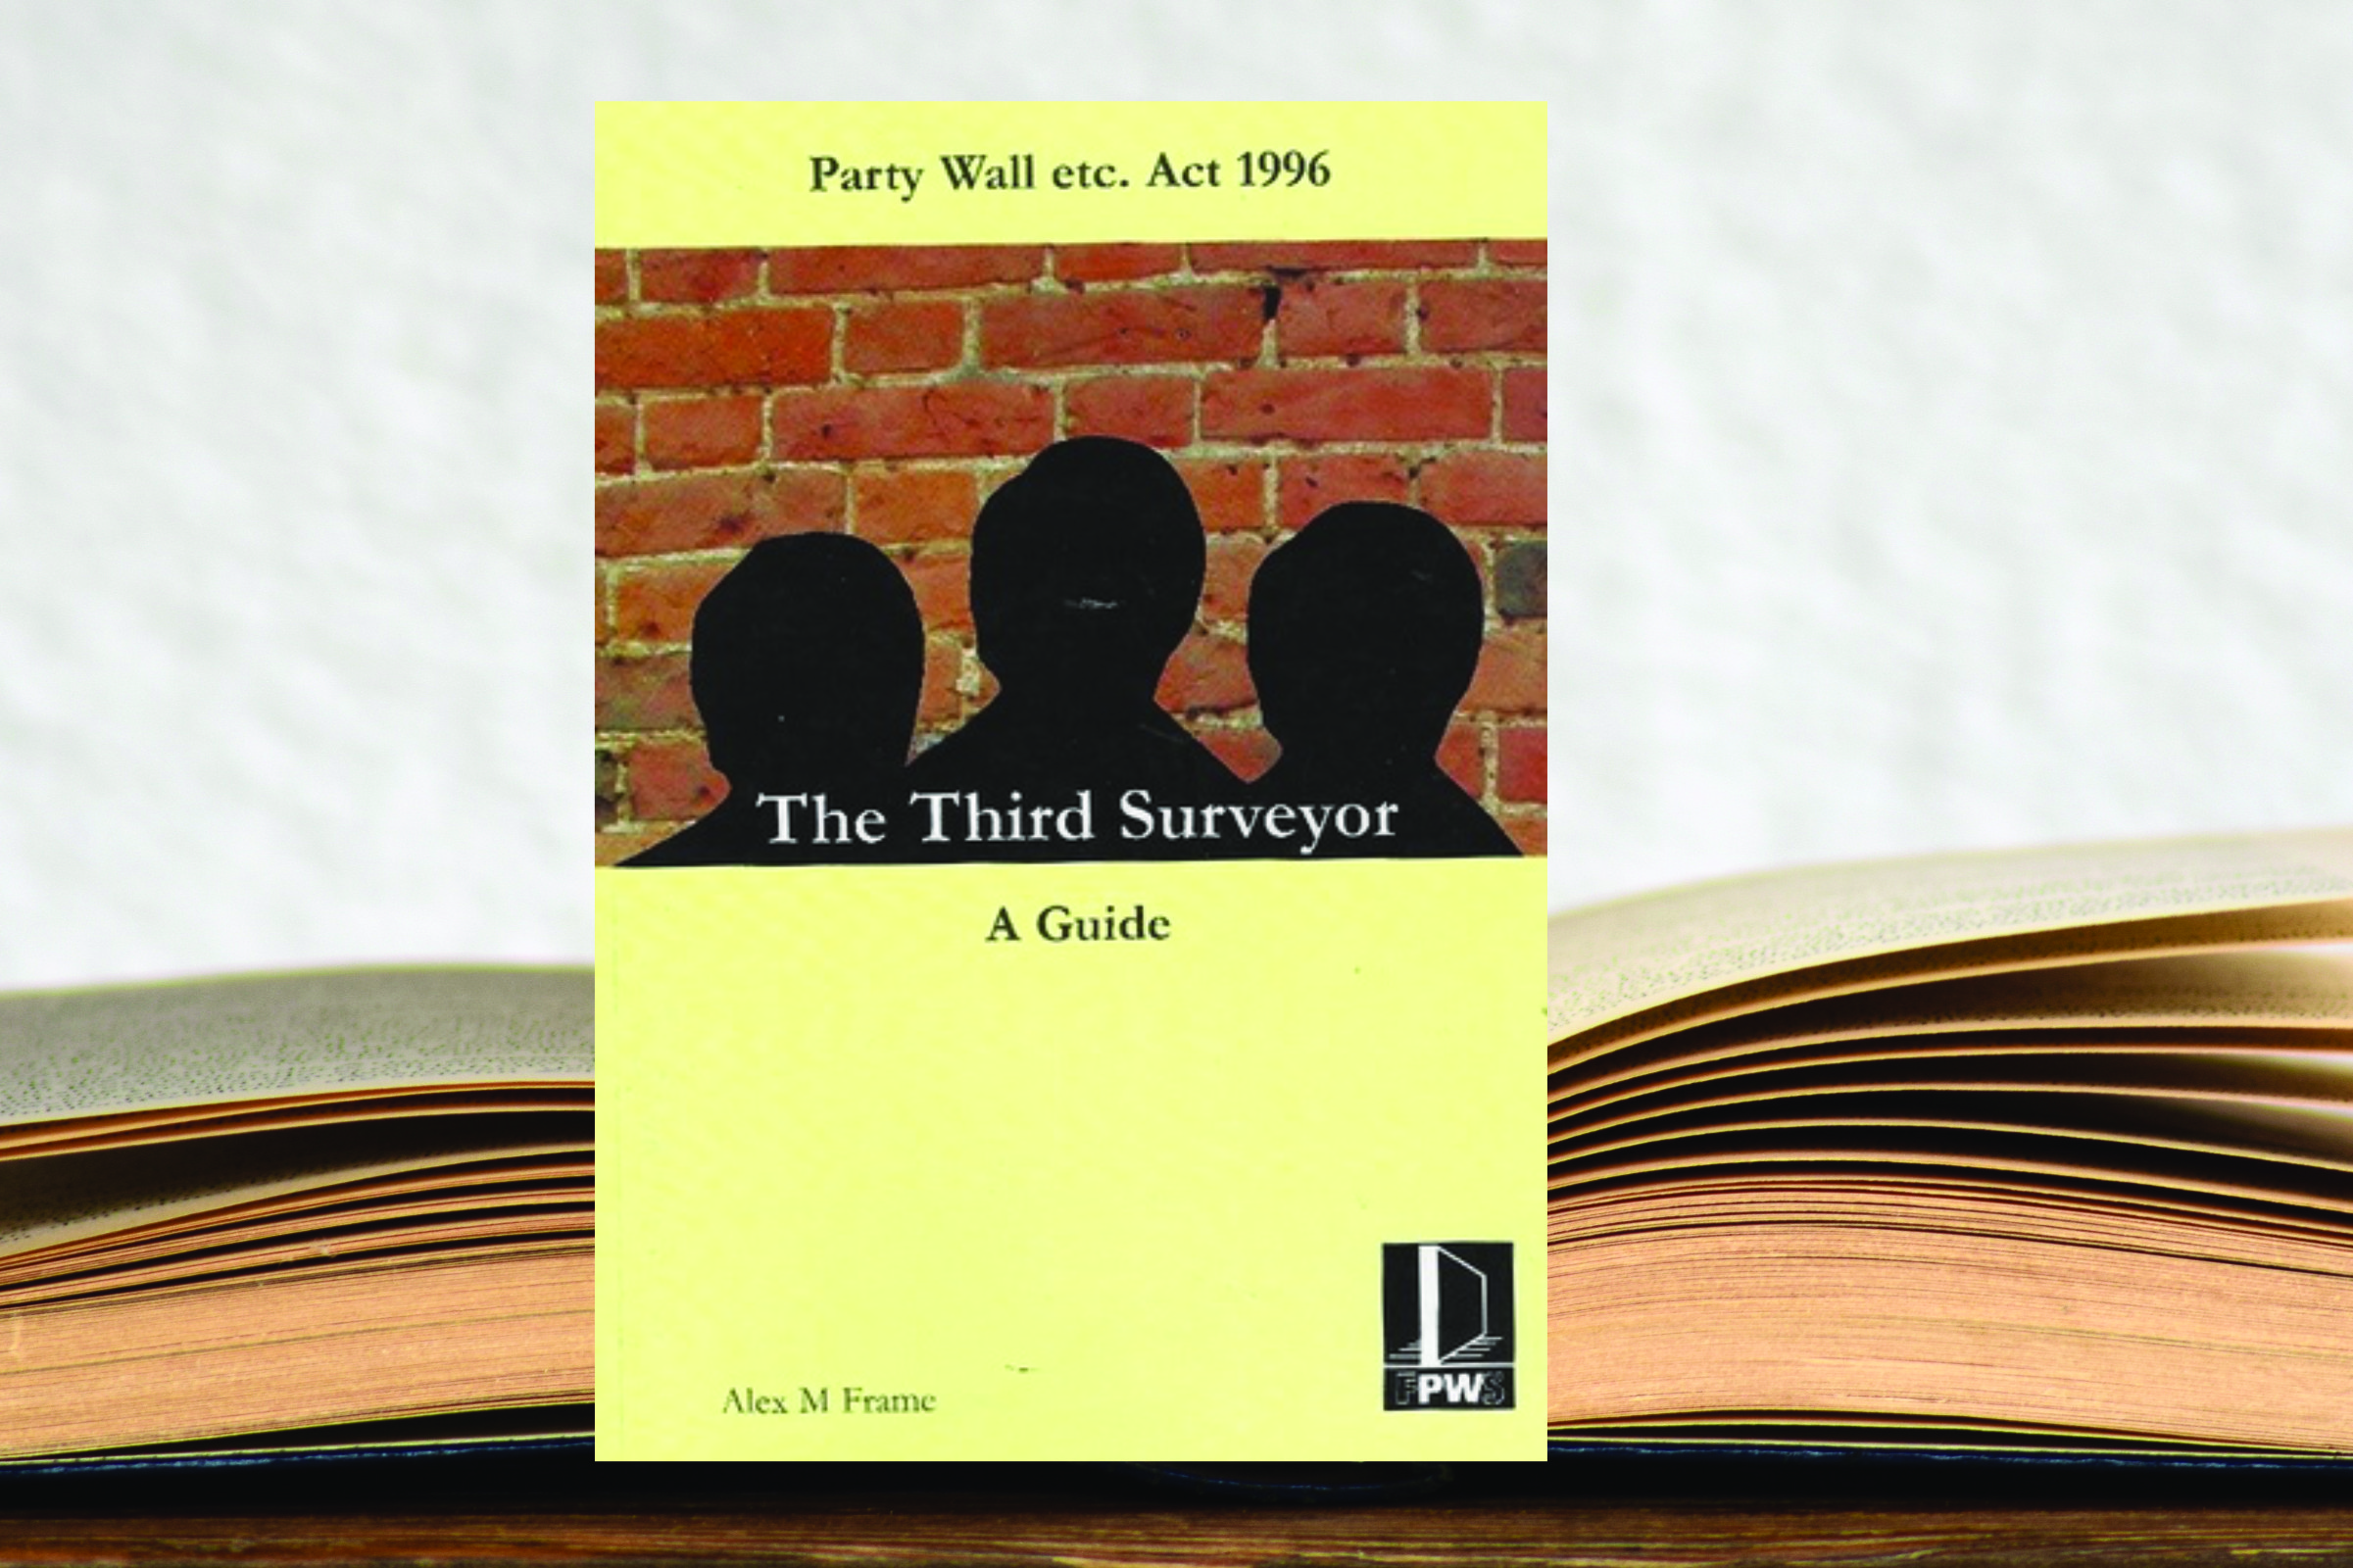 Advising the Appointing Owners about the selection and costs of going to the Third Surveyor